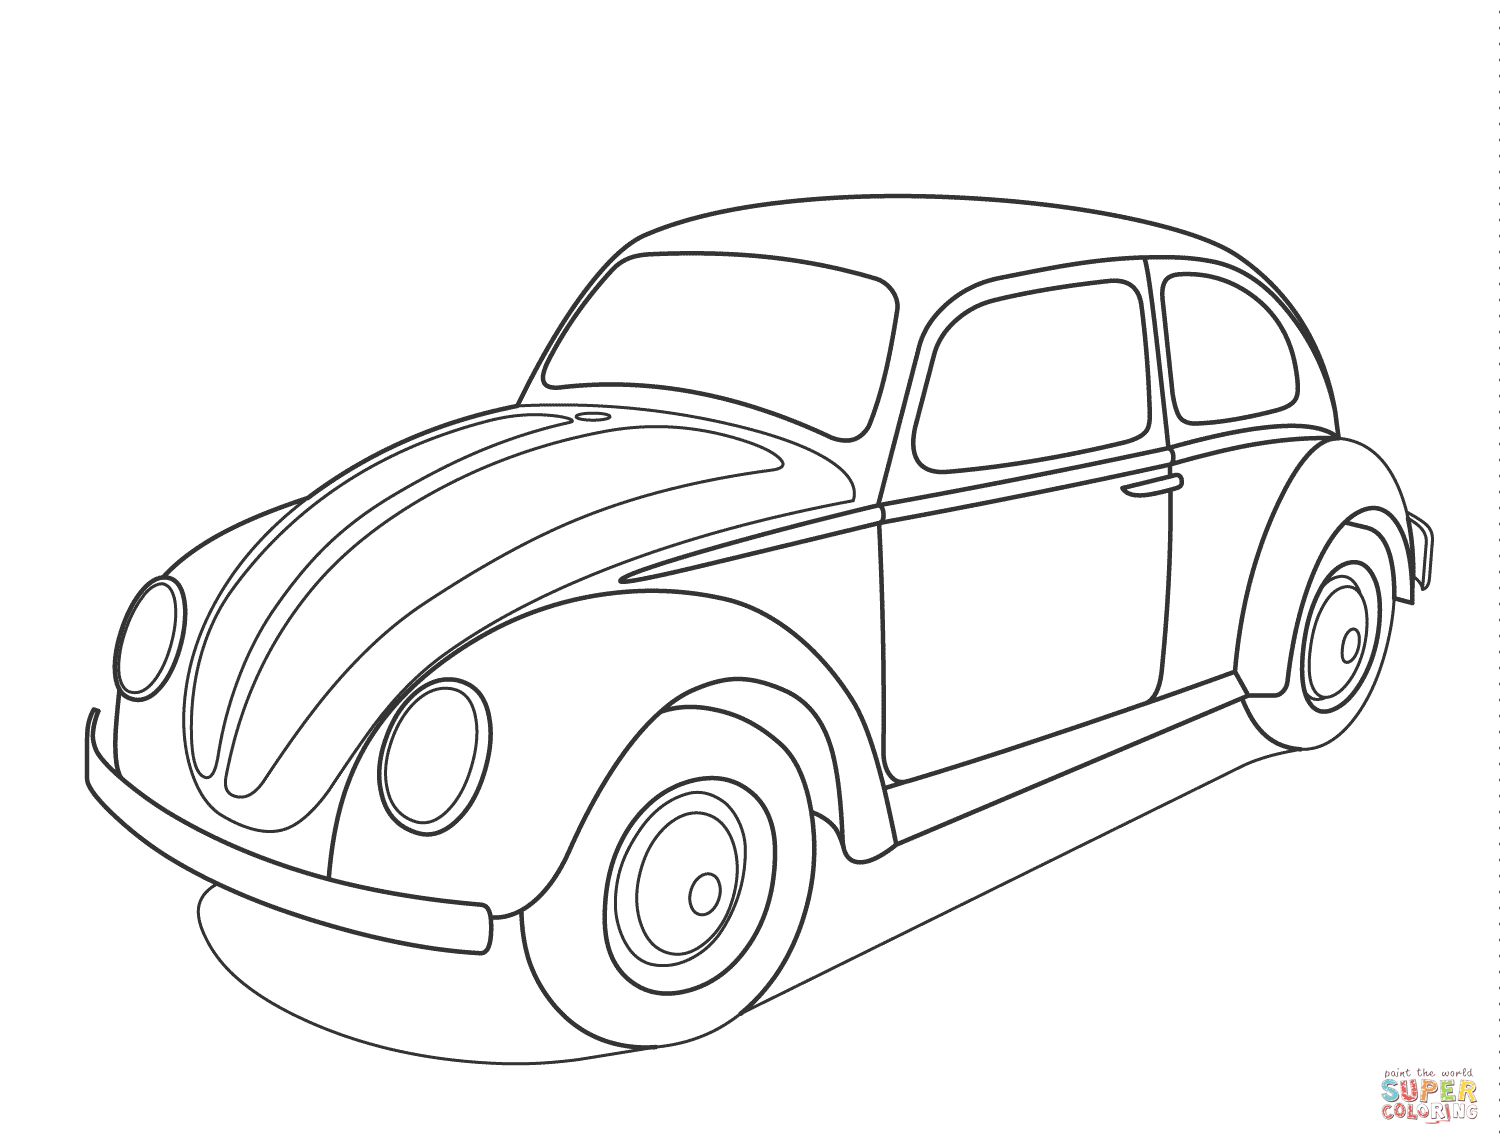 Volkswagen Beetle Coloring Pages to Print 6s - To print for your project